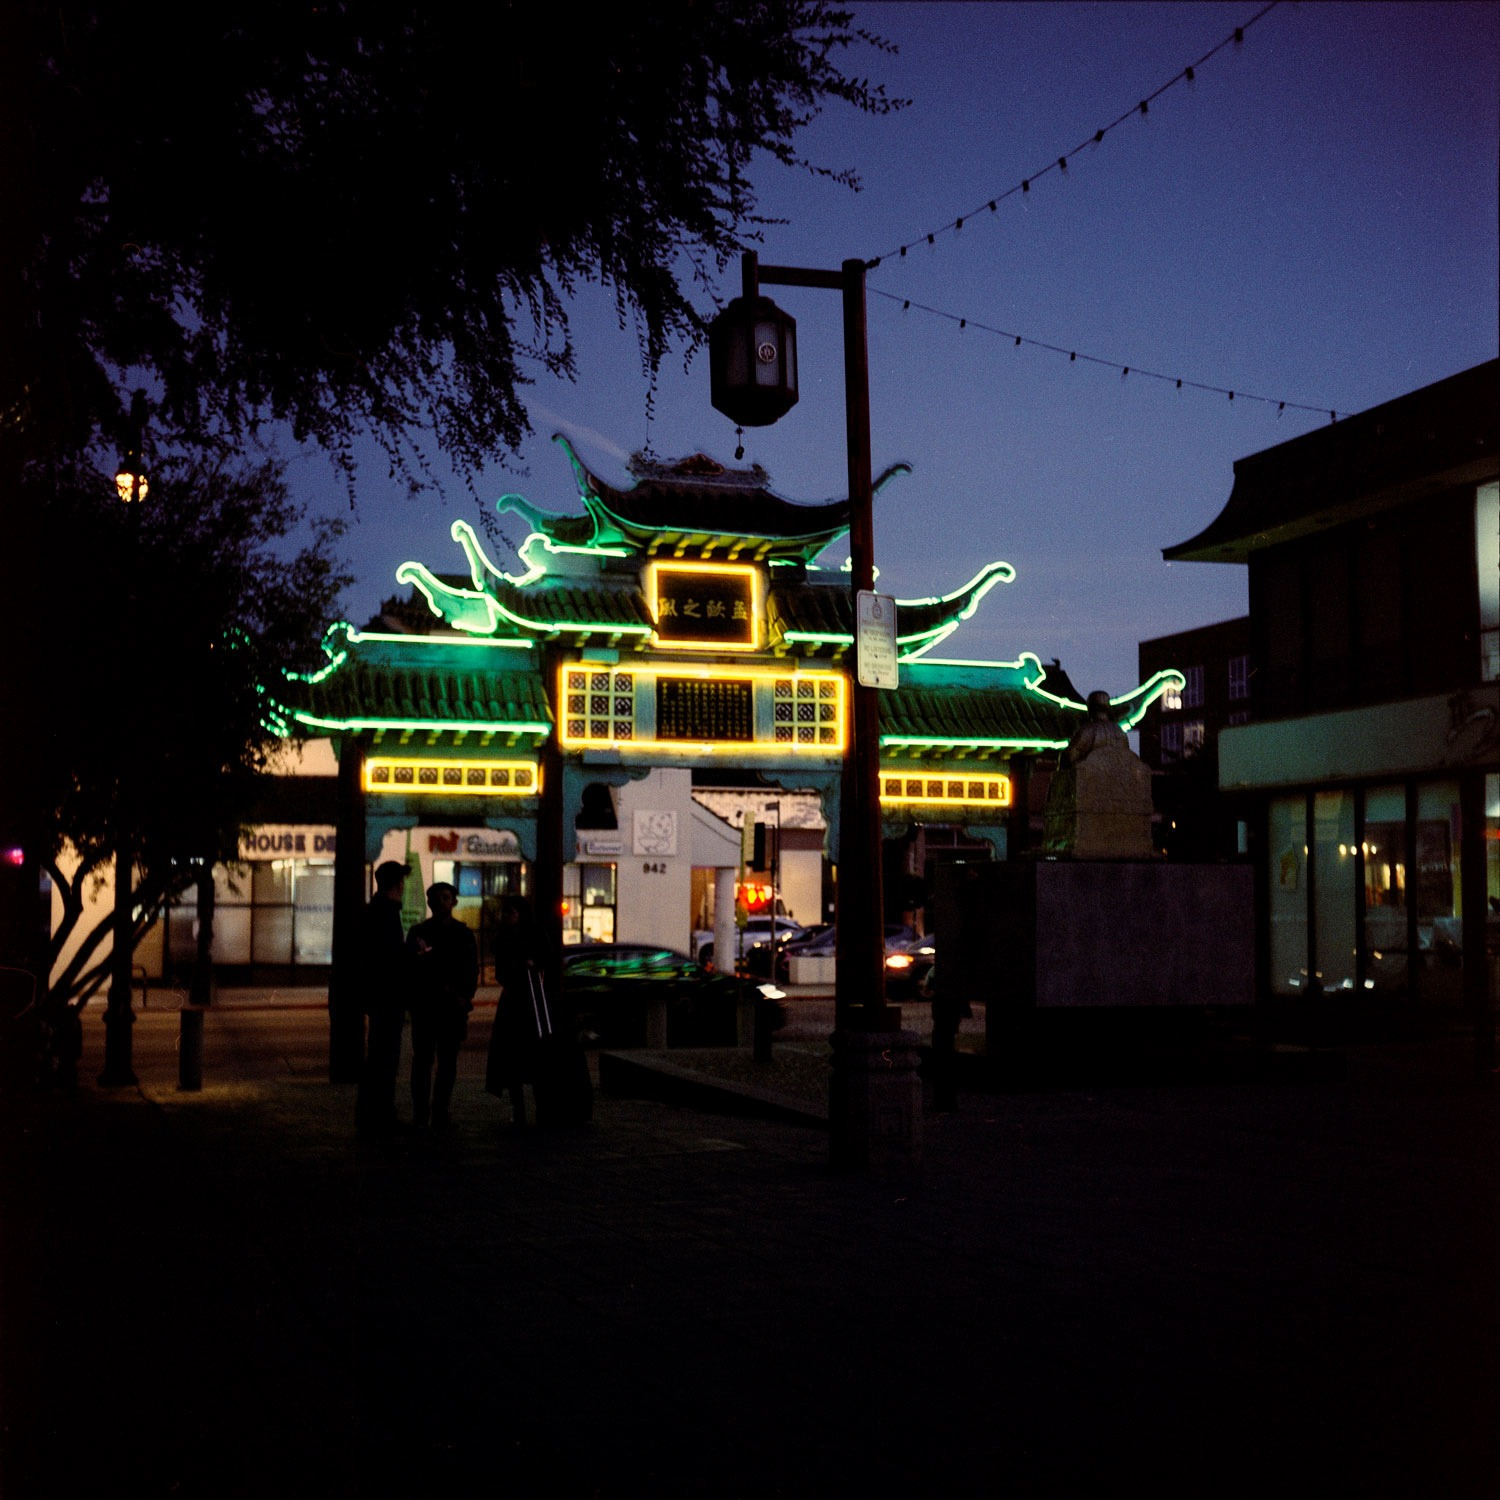 5 Frames With... Cinestill 800T (EI 1600 / 120 / Rolleiflex K4B) - by Laura Pardo